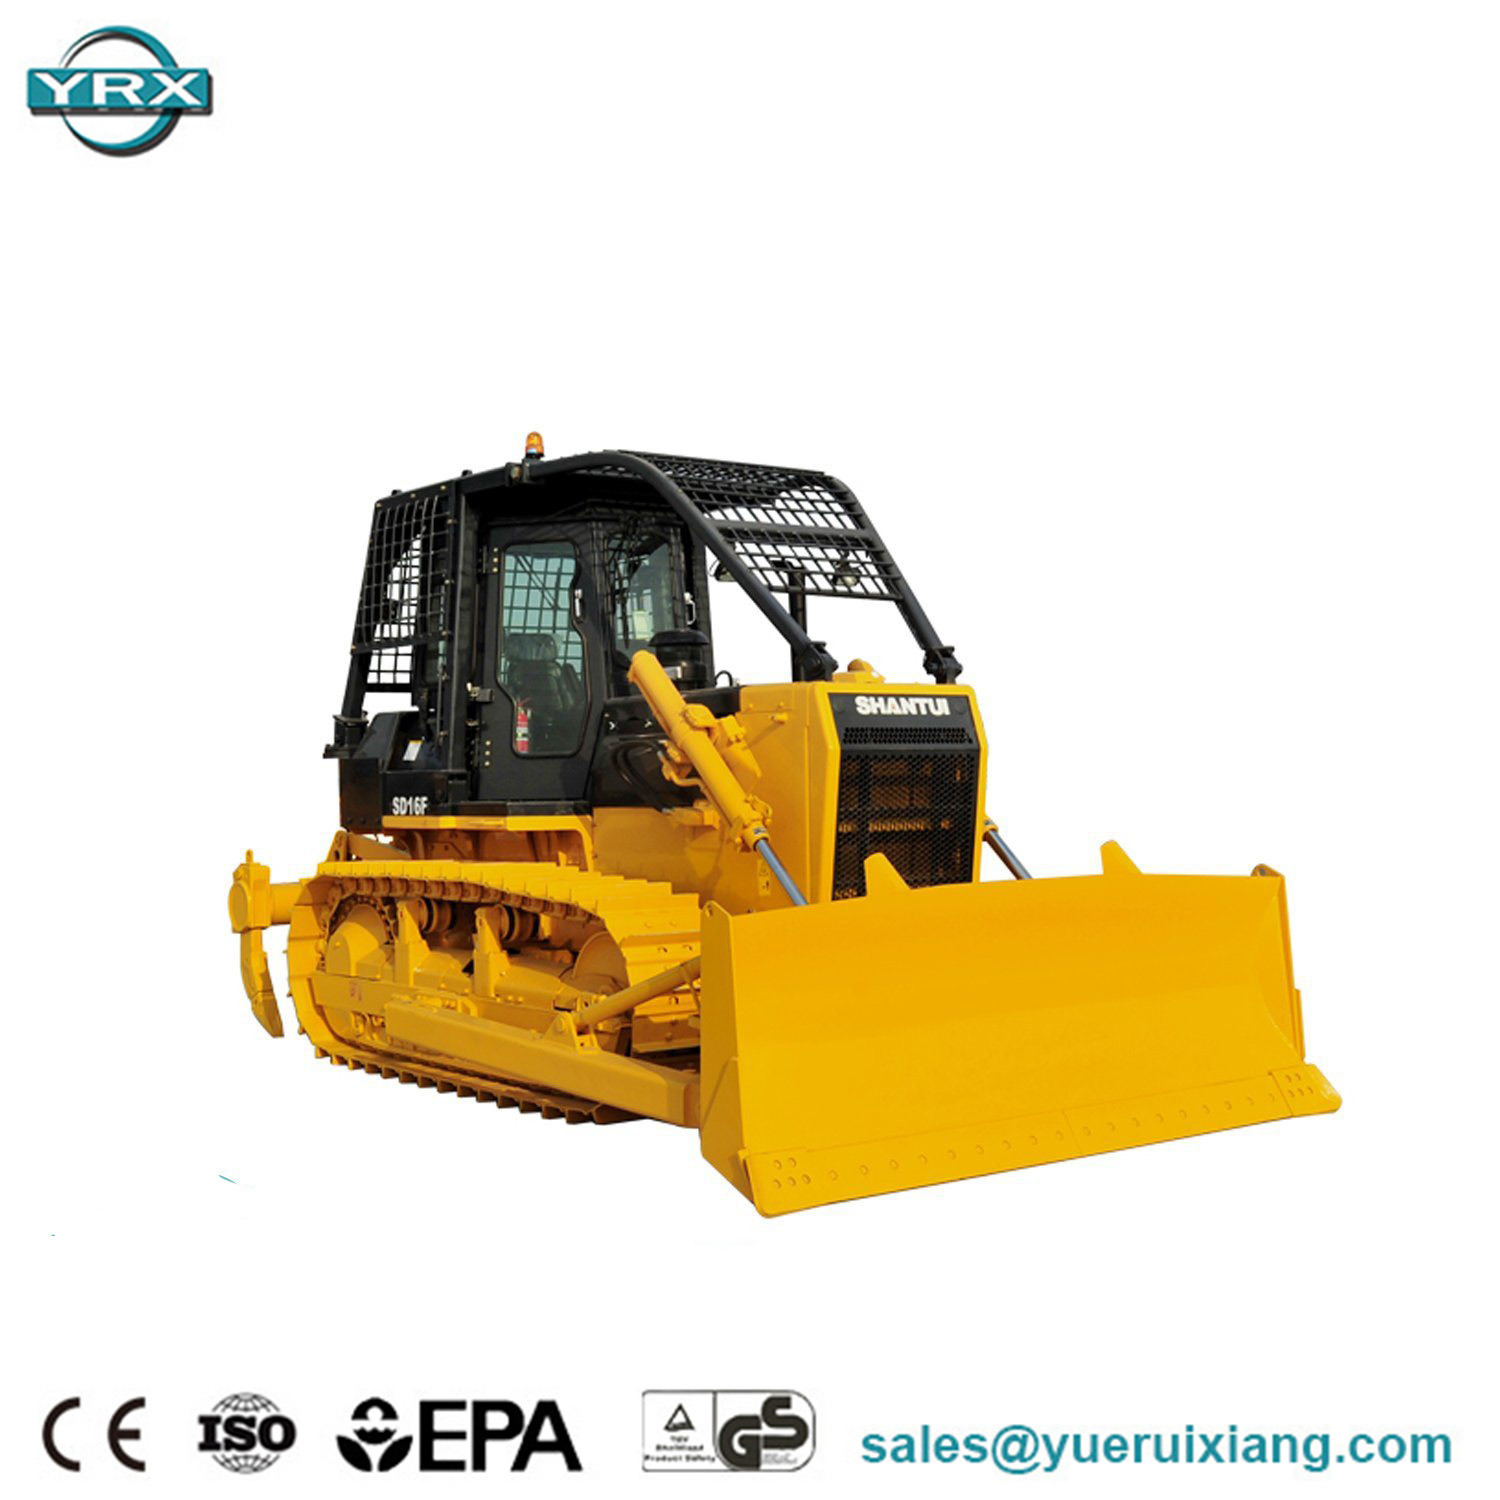 China Shantui Small Dozers for Sale Price SD16f 120kw New Crawler